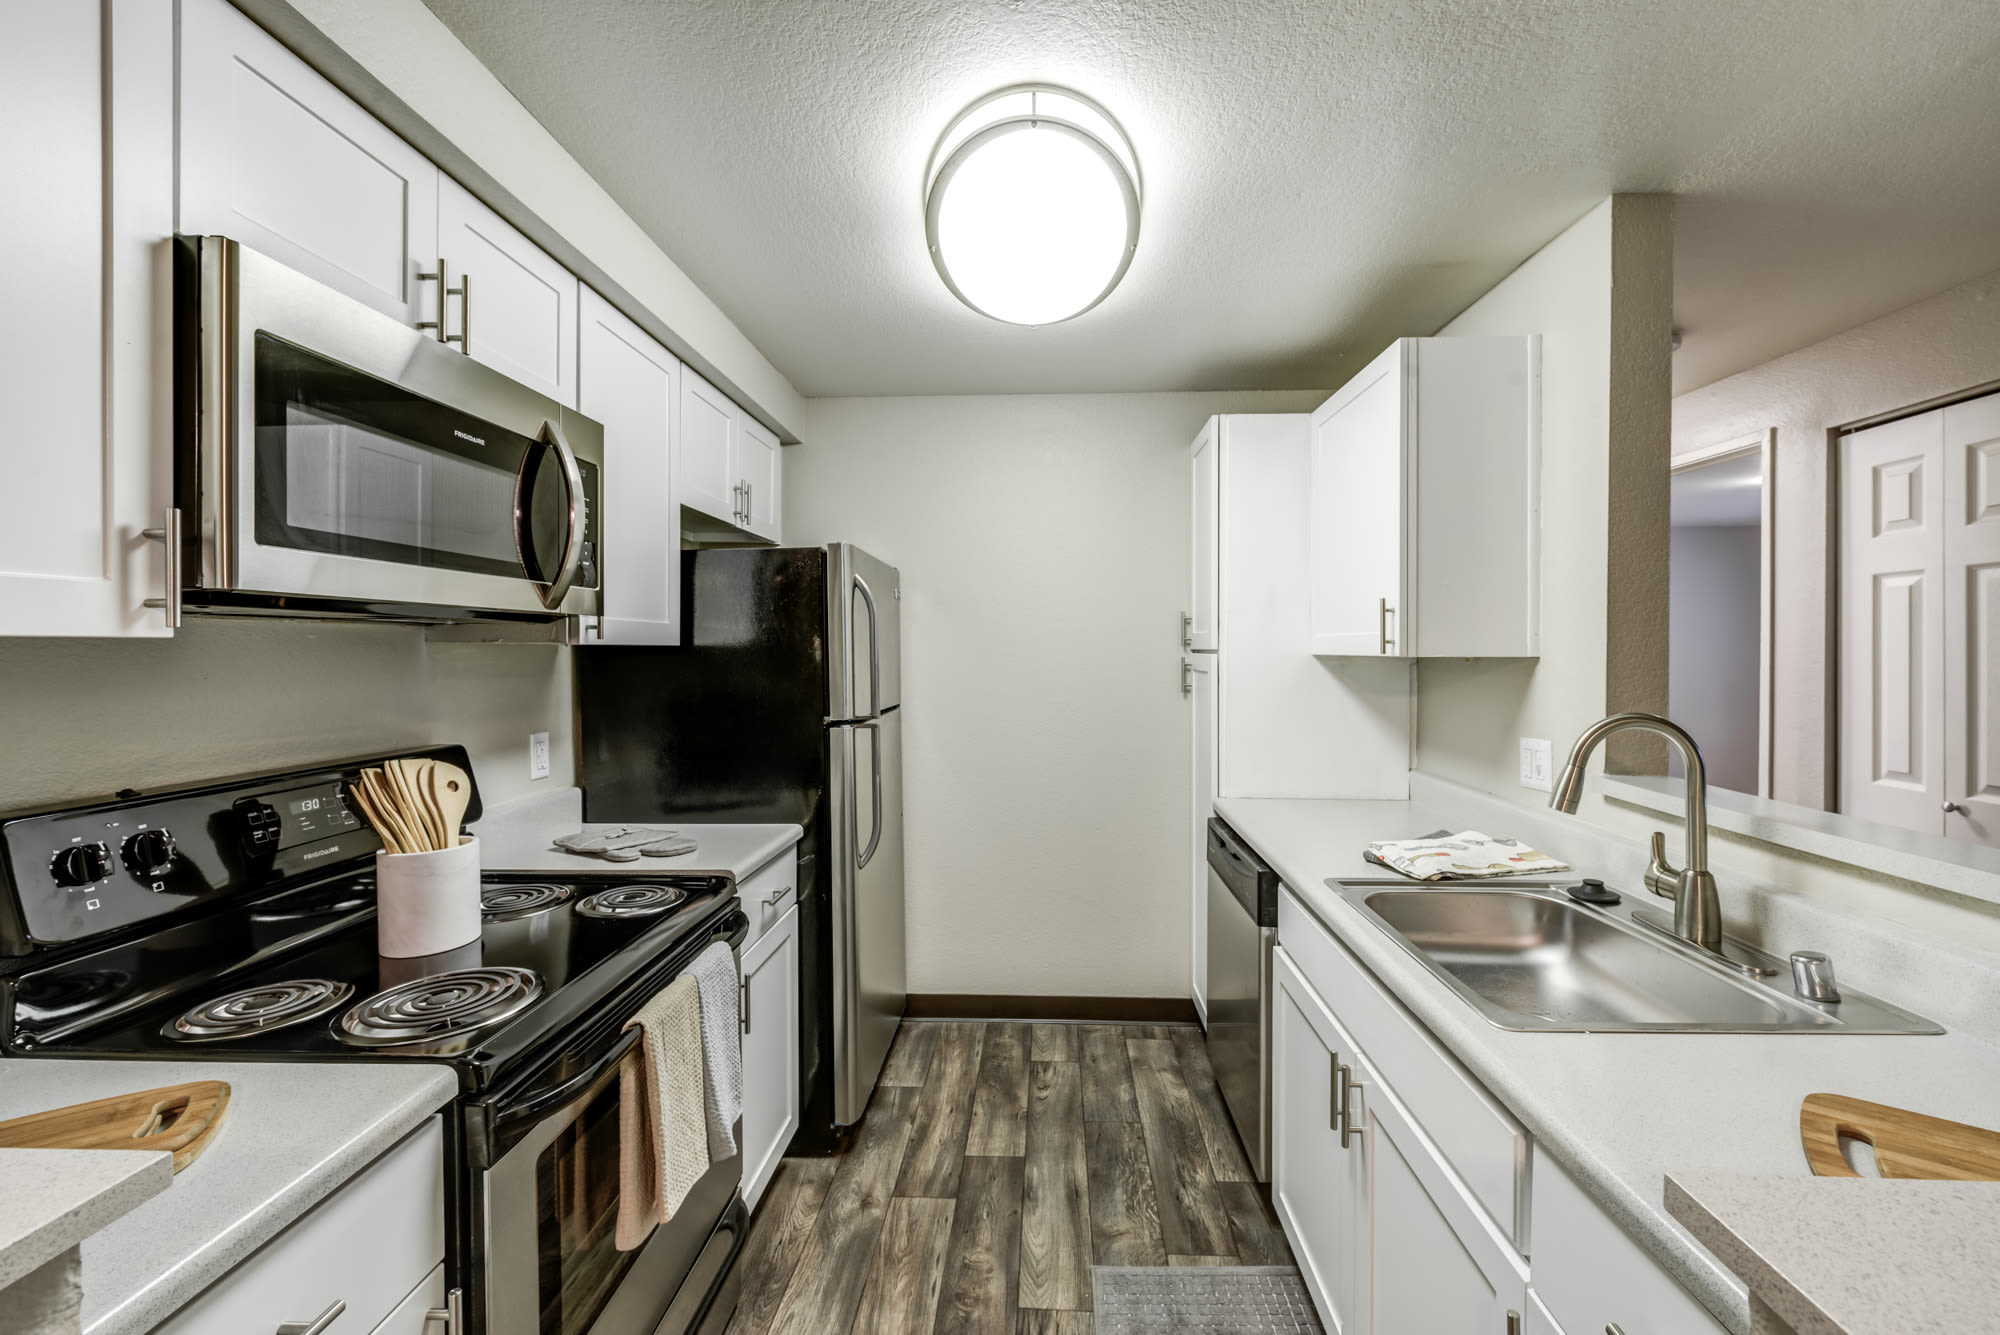 Kitchen at Olin Fields Apartments in Everett